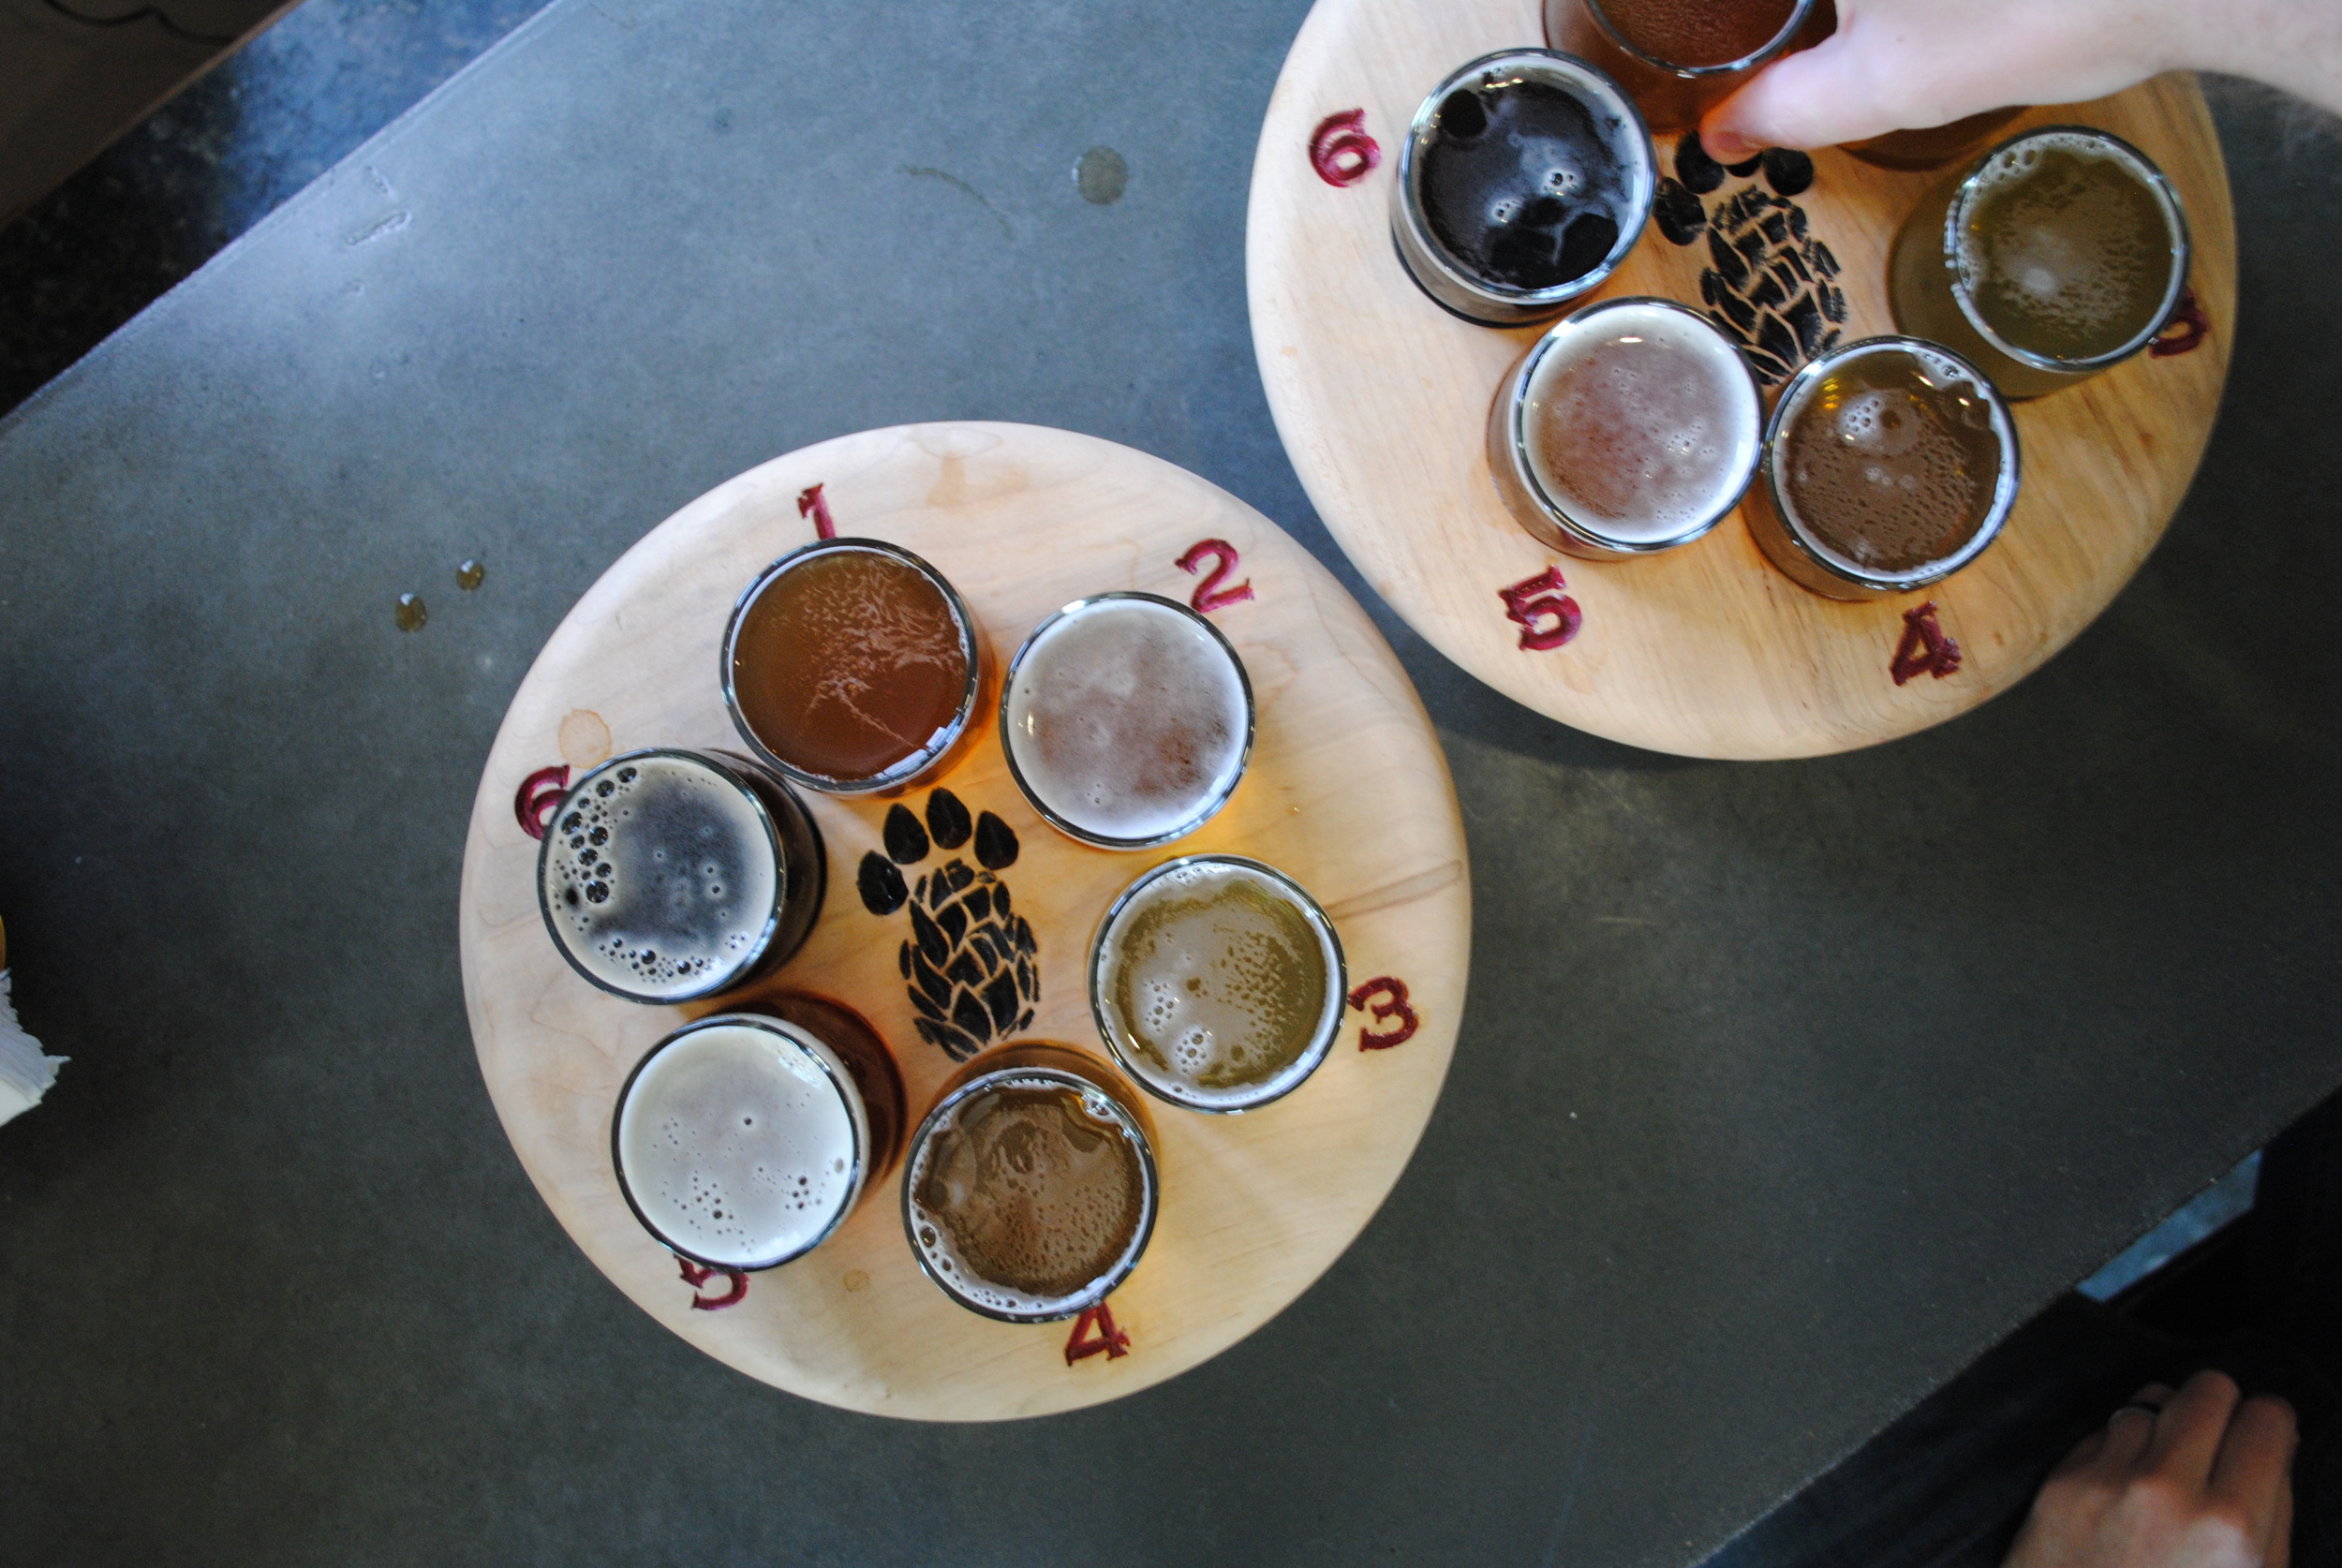 Narrowing down the Paw Paw beer list to six wasn't easy...